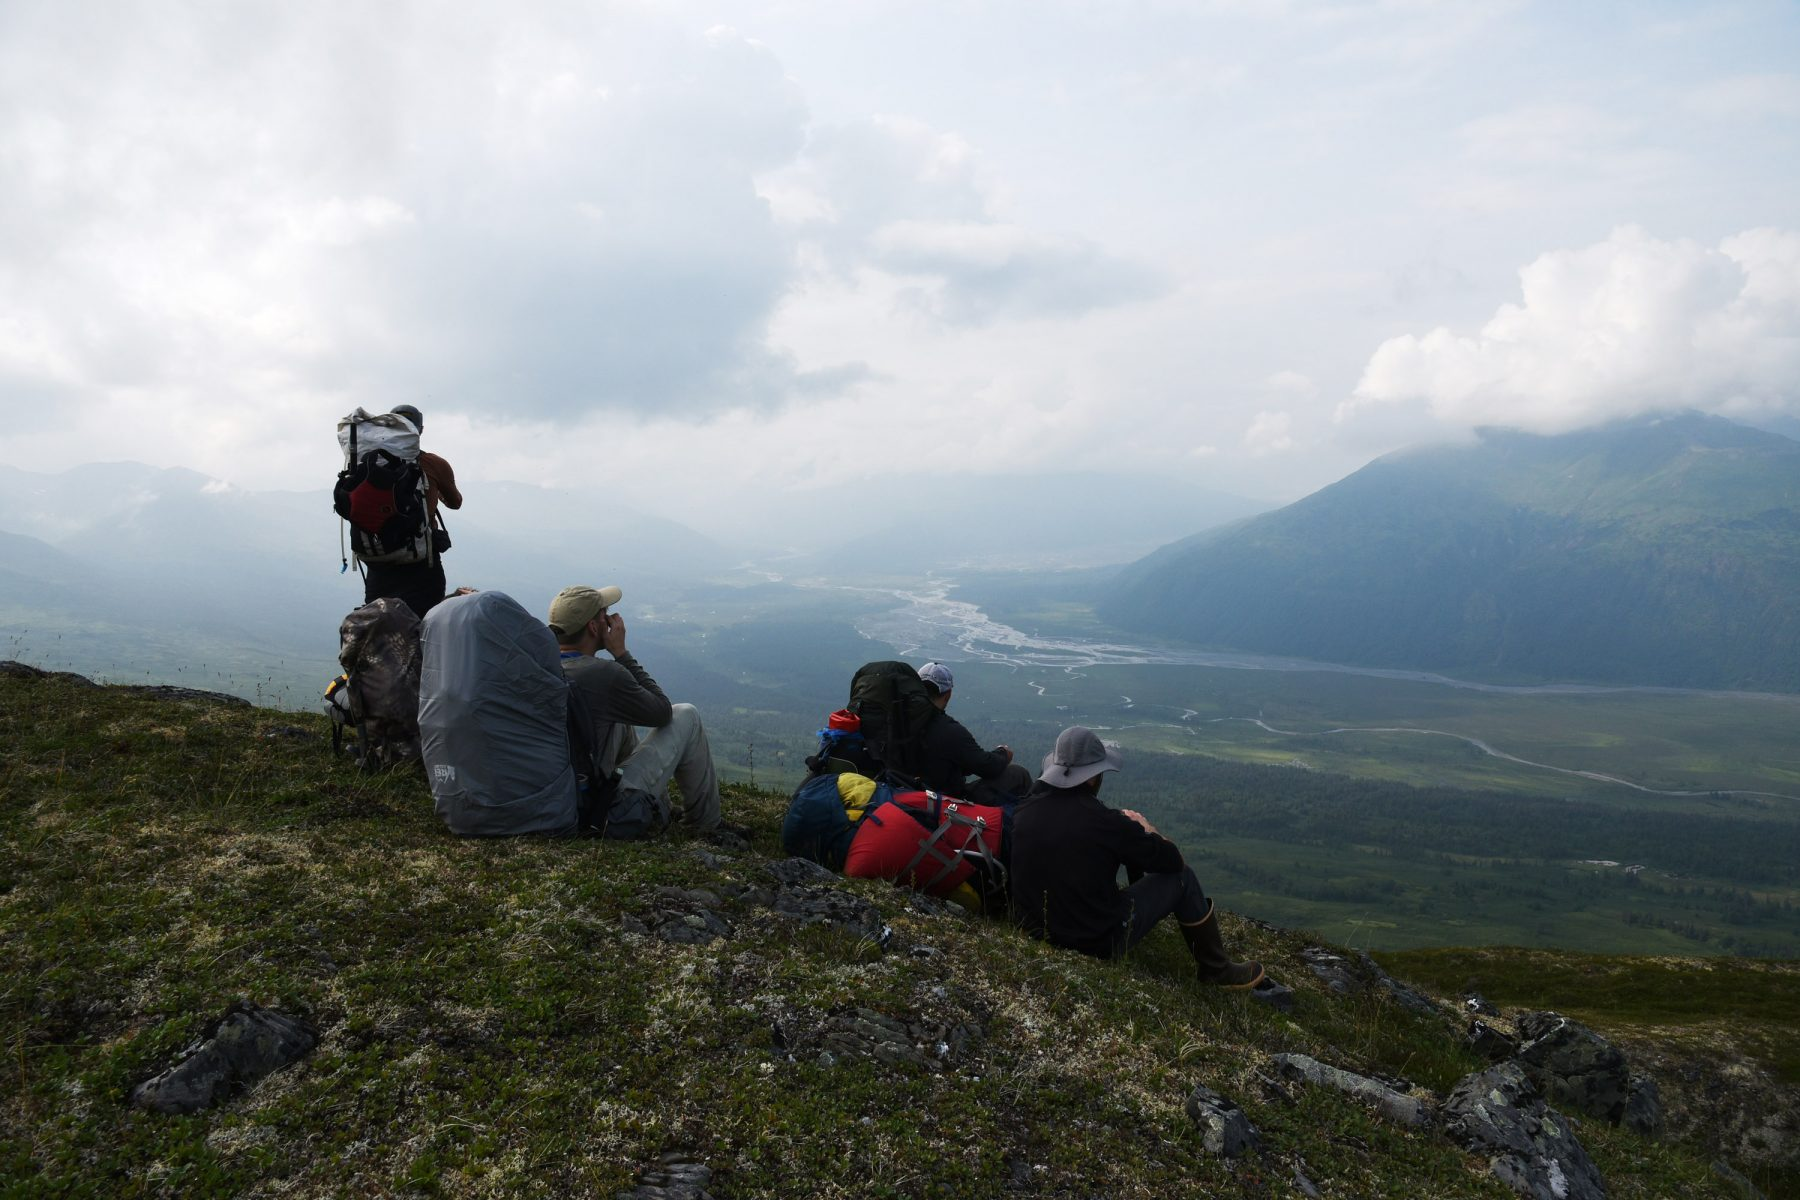 Overlooking the Tokositna River Valley